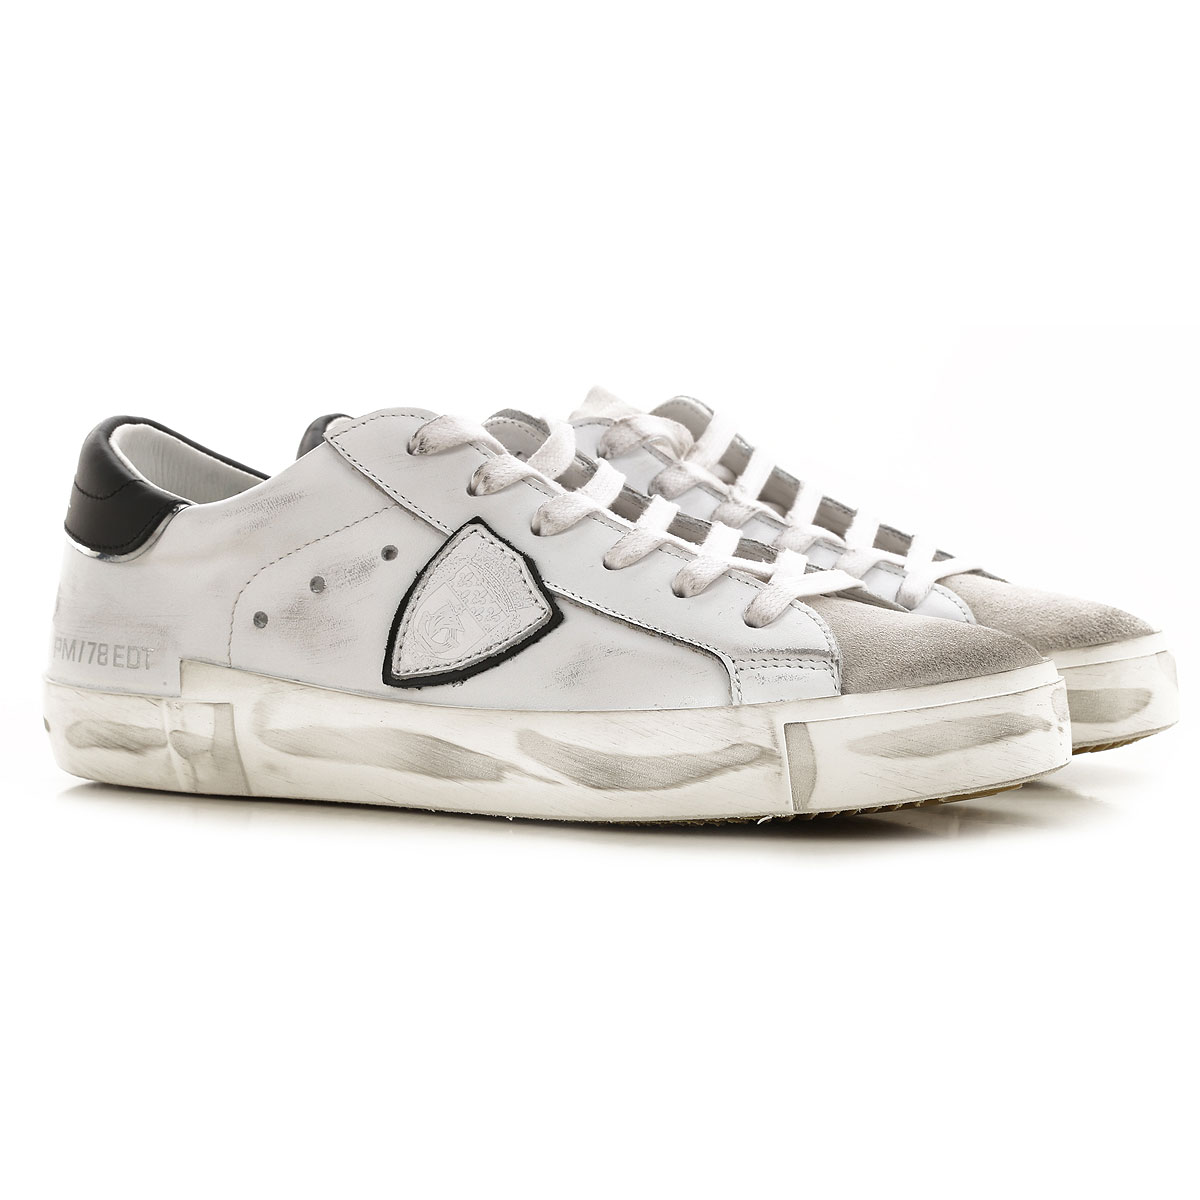 Philippe Model Sneakers for Men On Sale, Dirty White, Leather, 2019, 10.5 11.5 12 7.5 8 9